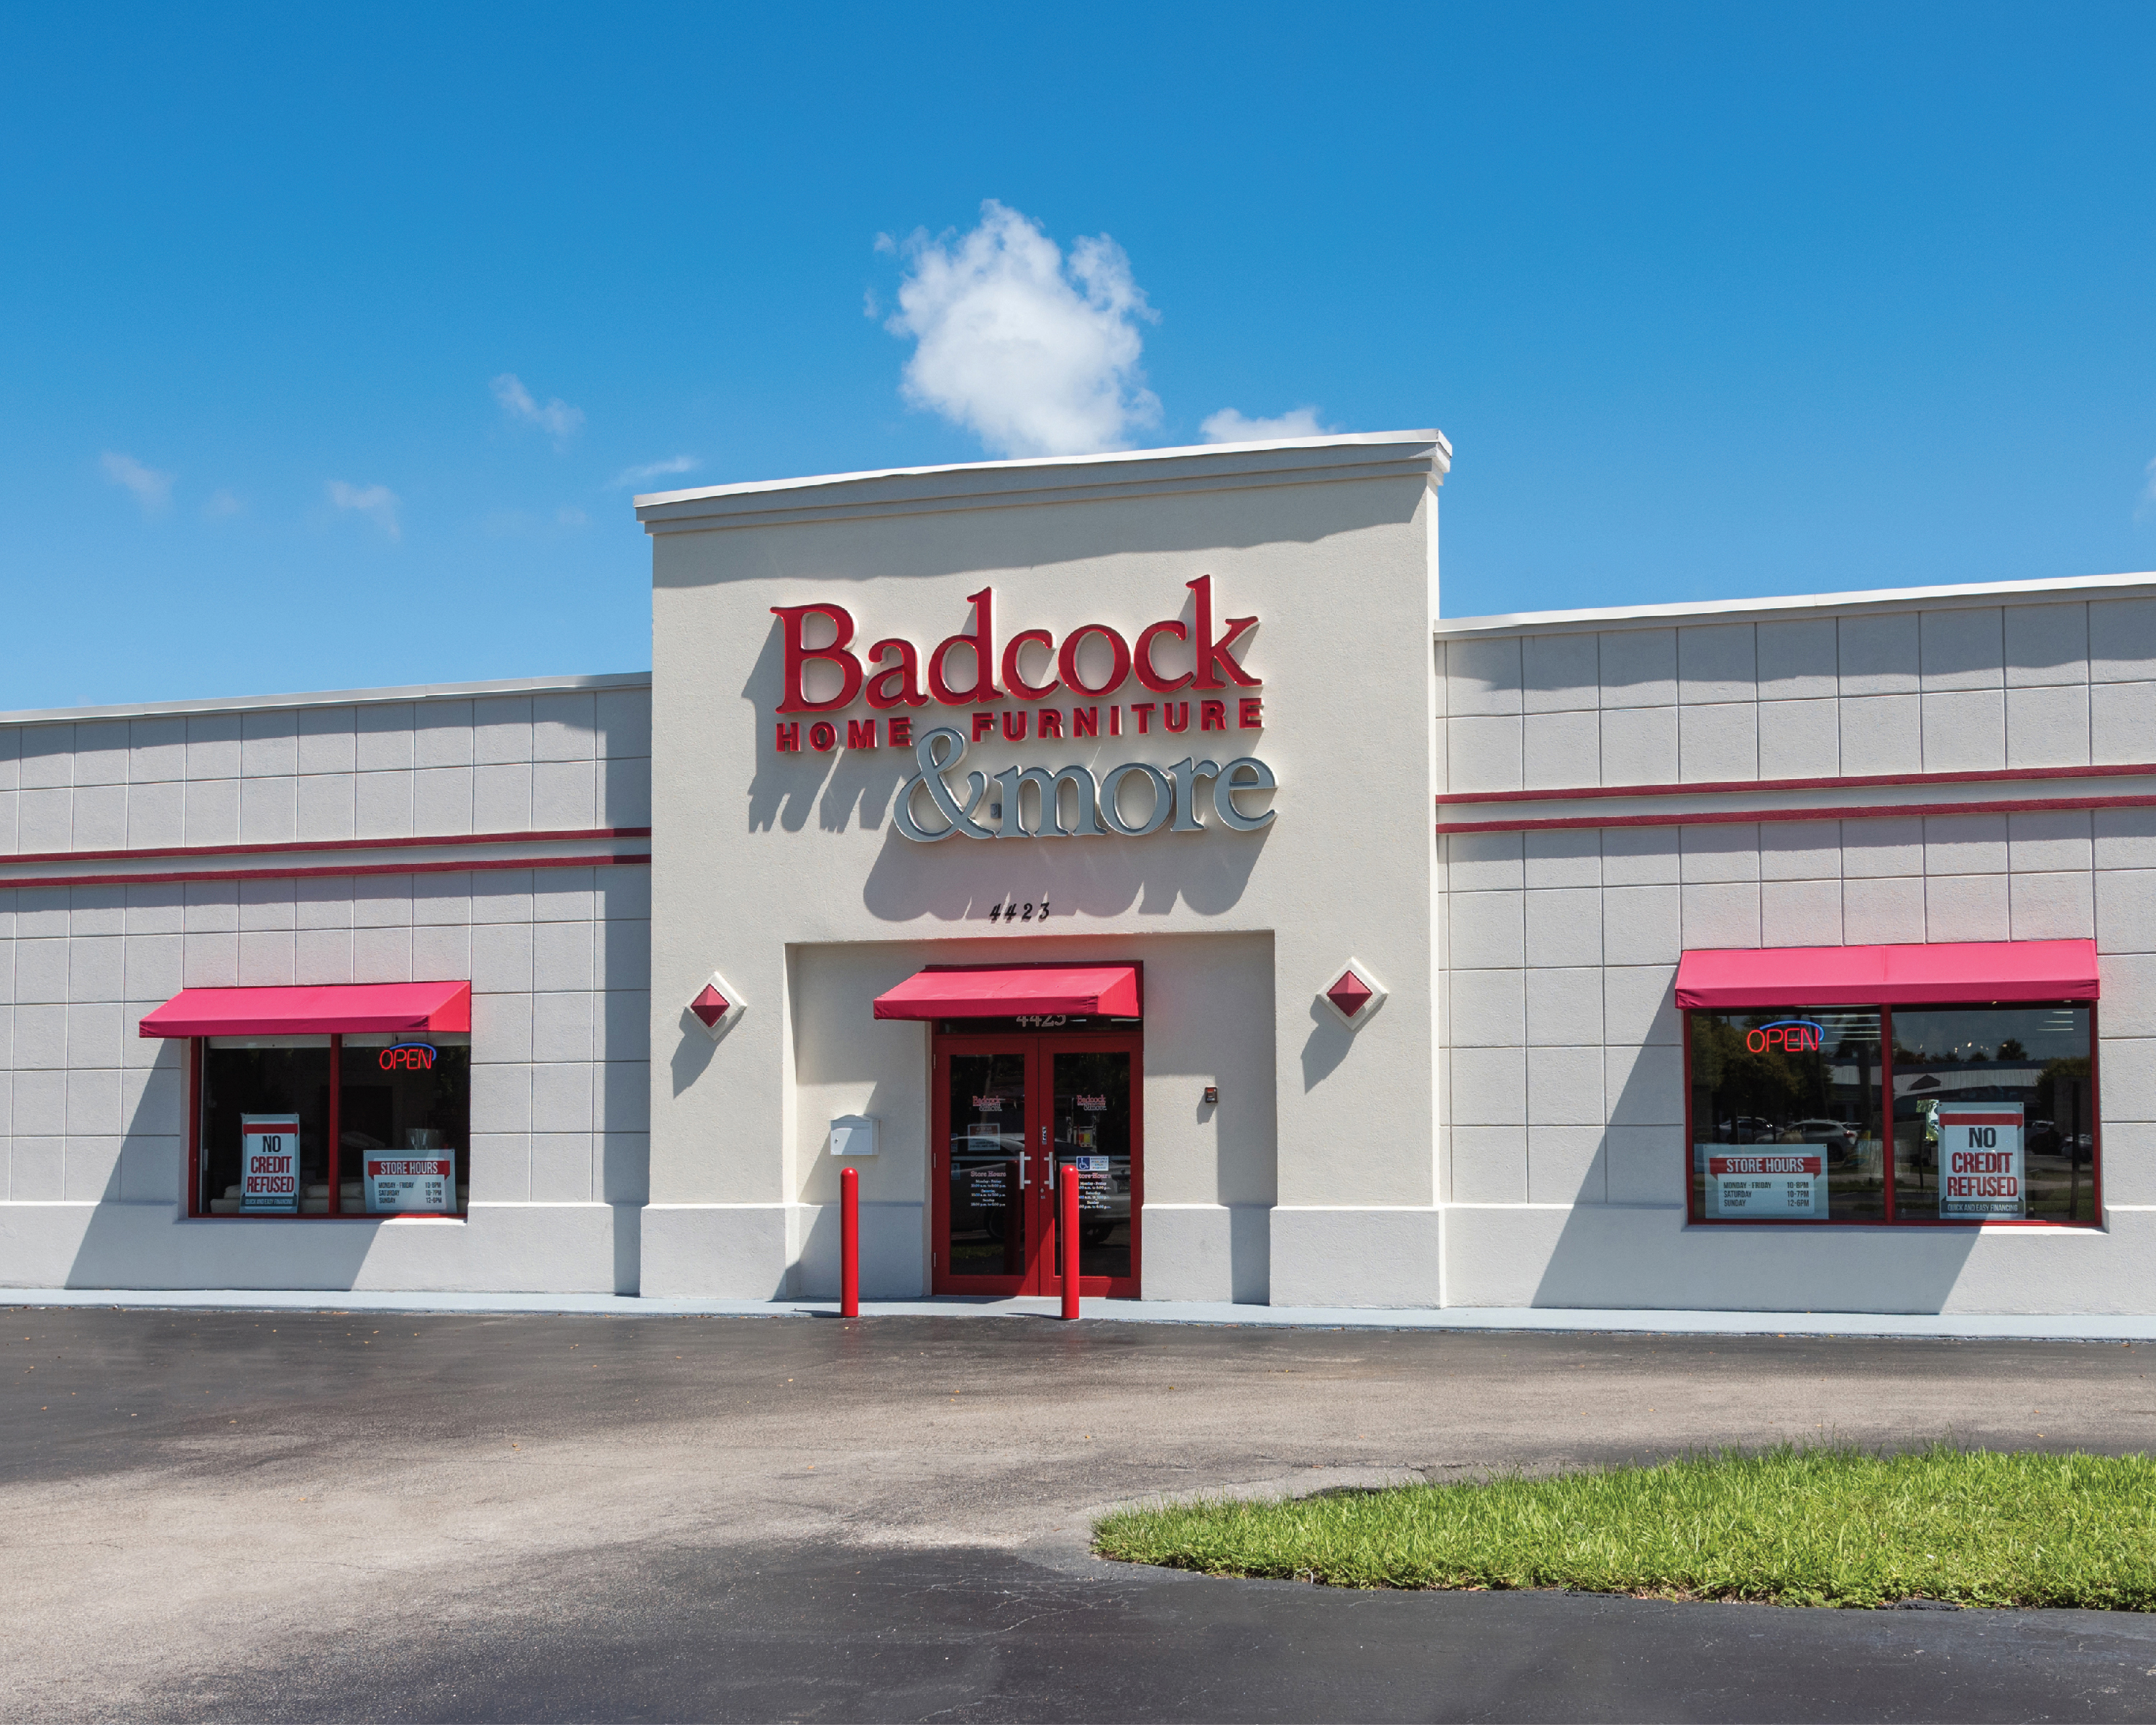 Badcock home furniture more of south florida 4423 cherry rd west palm beach fl 33409 Badcock home furniture more greenwood sc